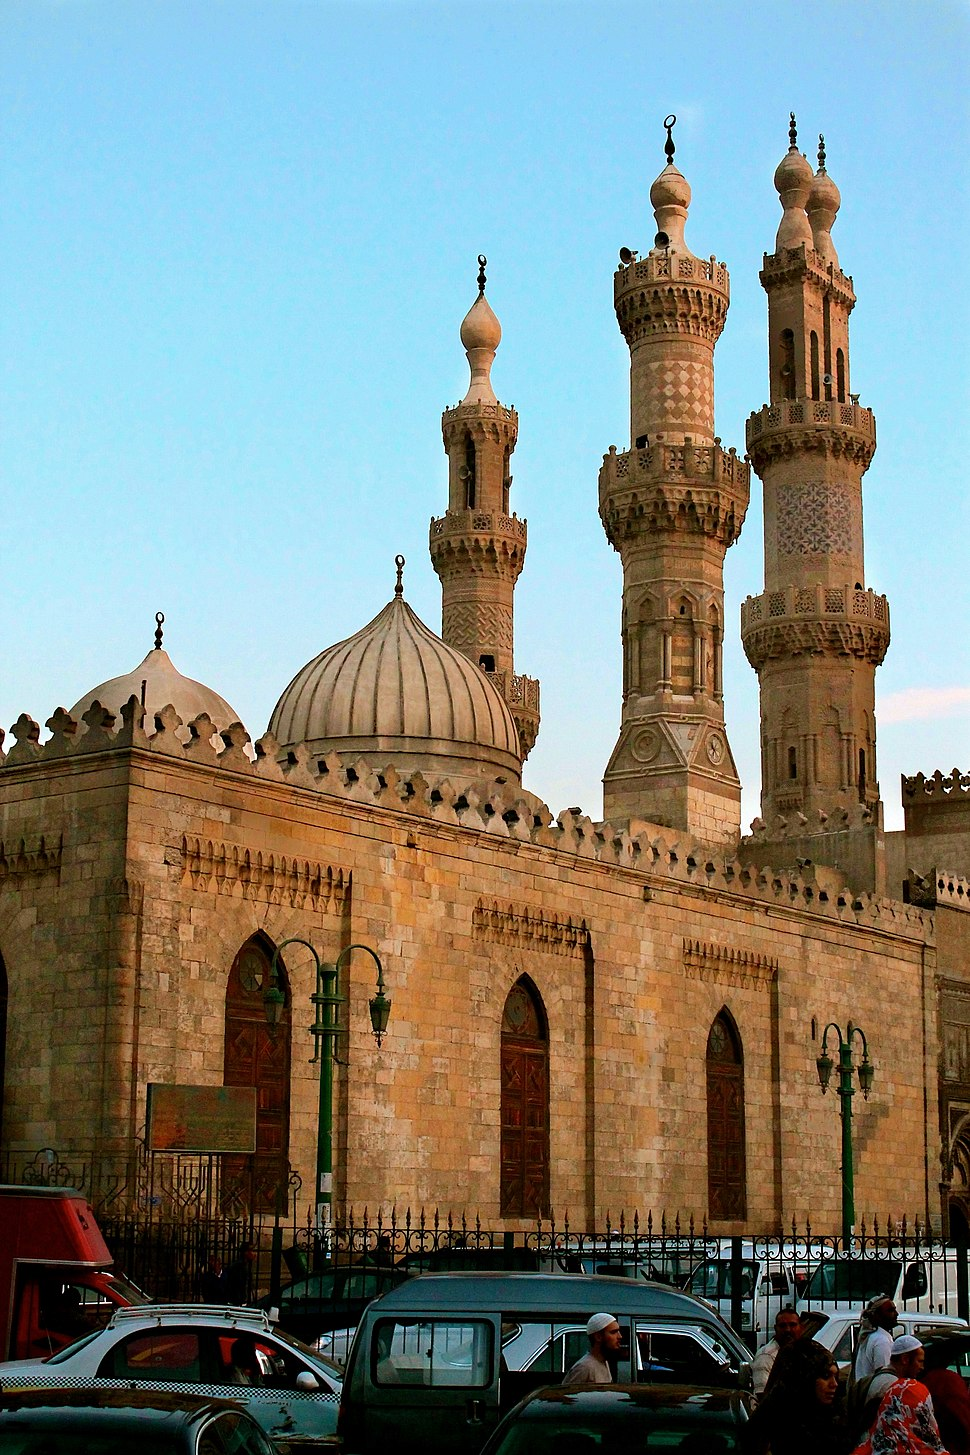 A side view of the front gate of Al Azhar mosque.